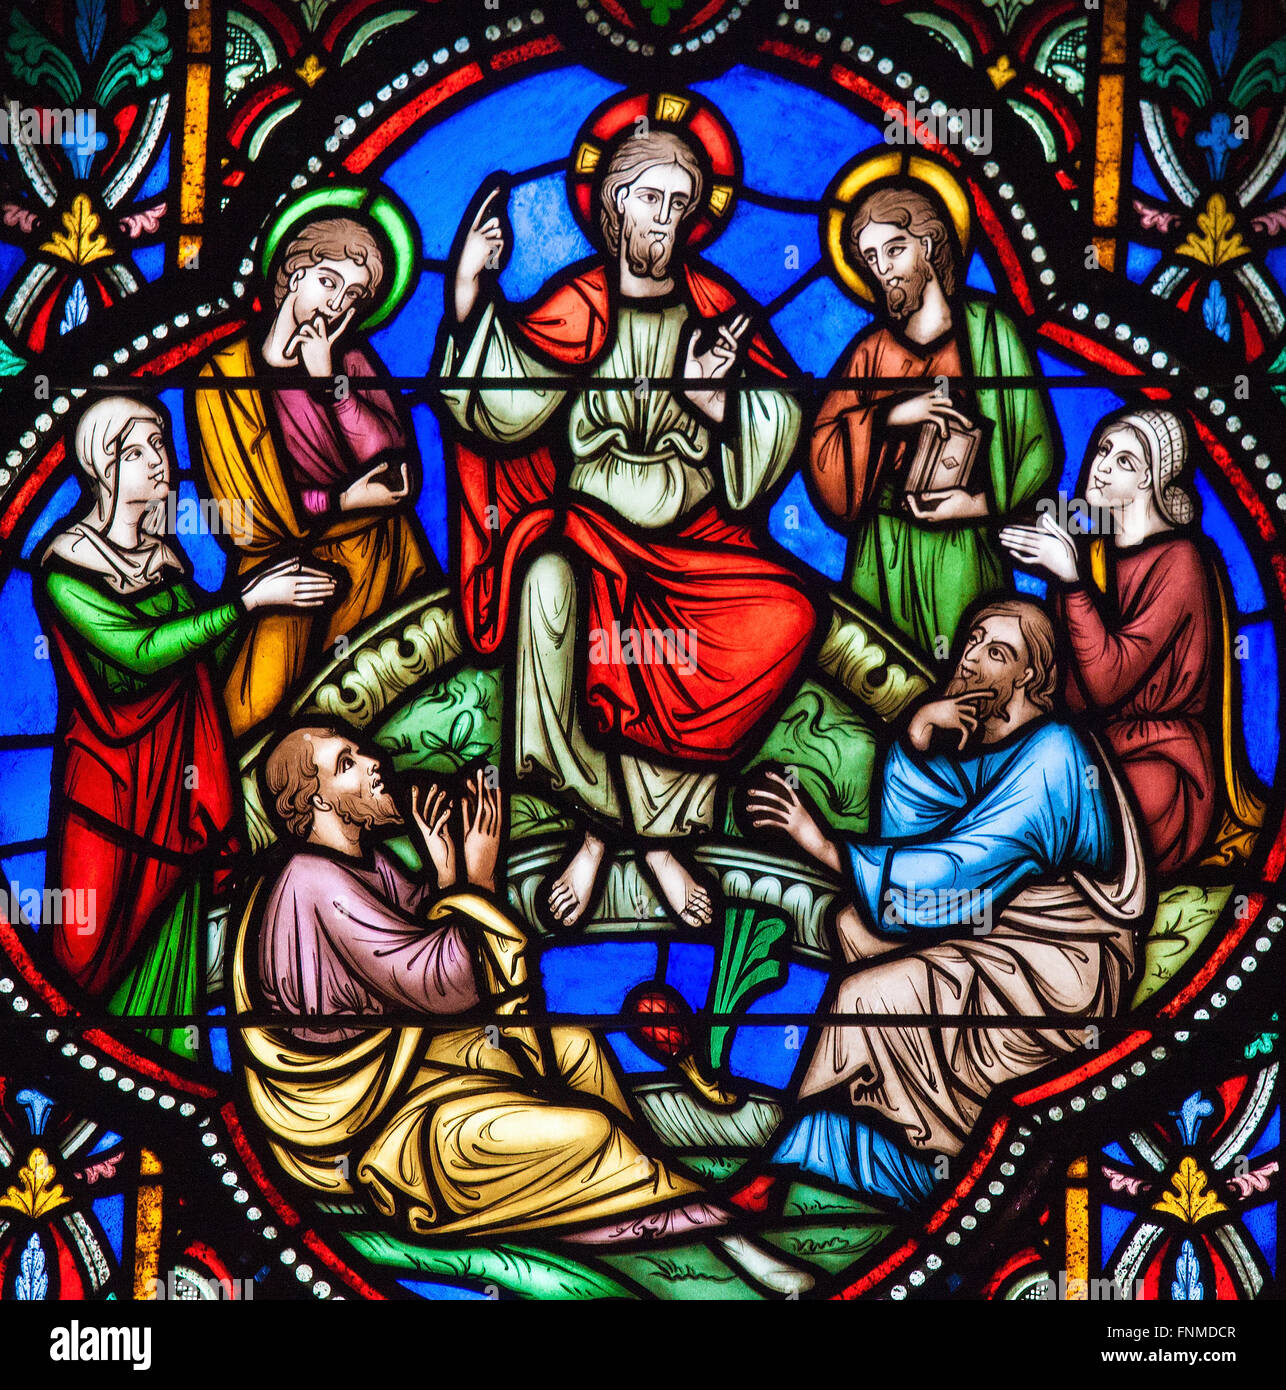 stained glass window depicting jesus and the sermon on the